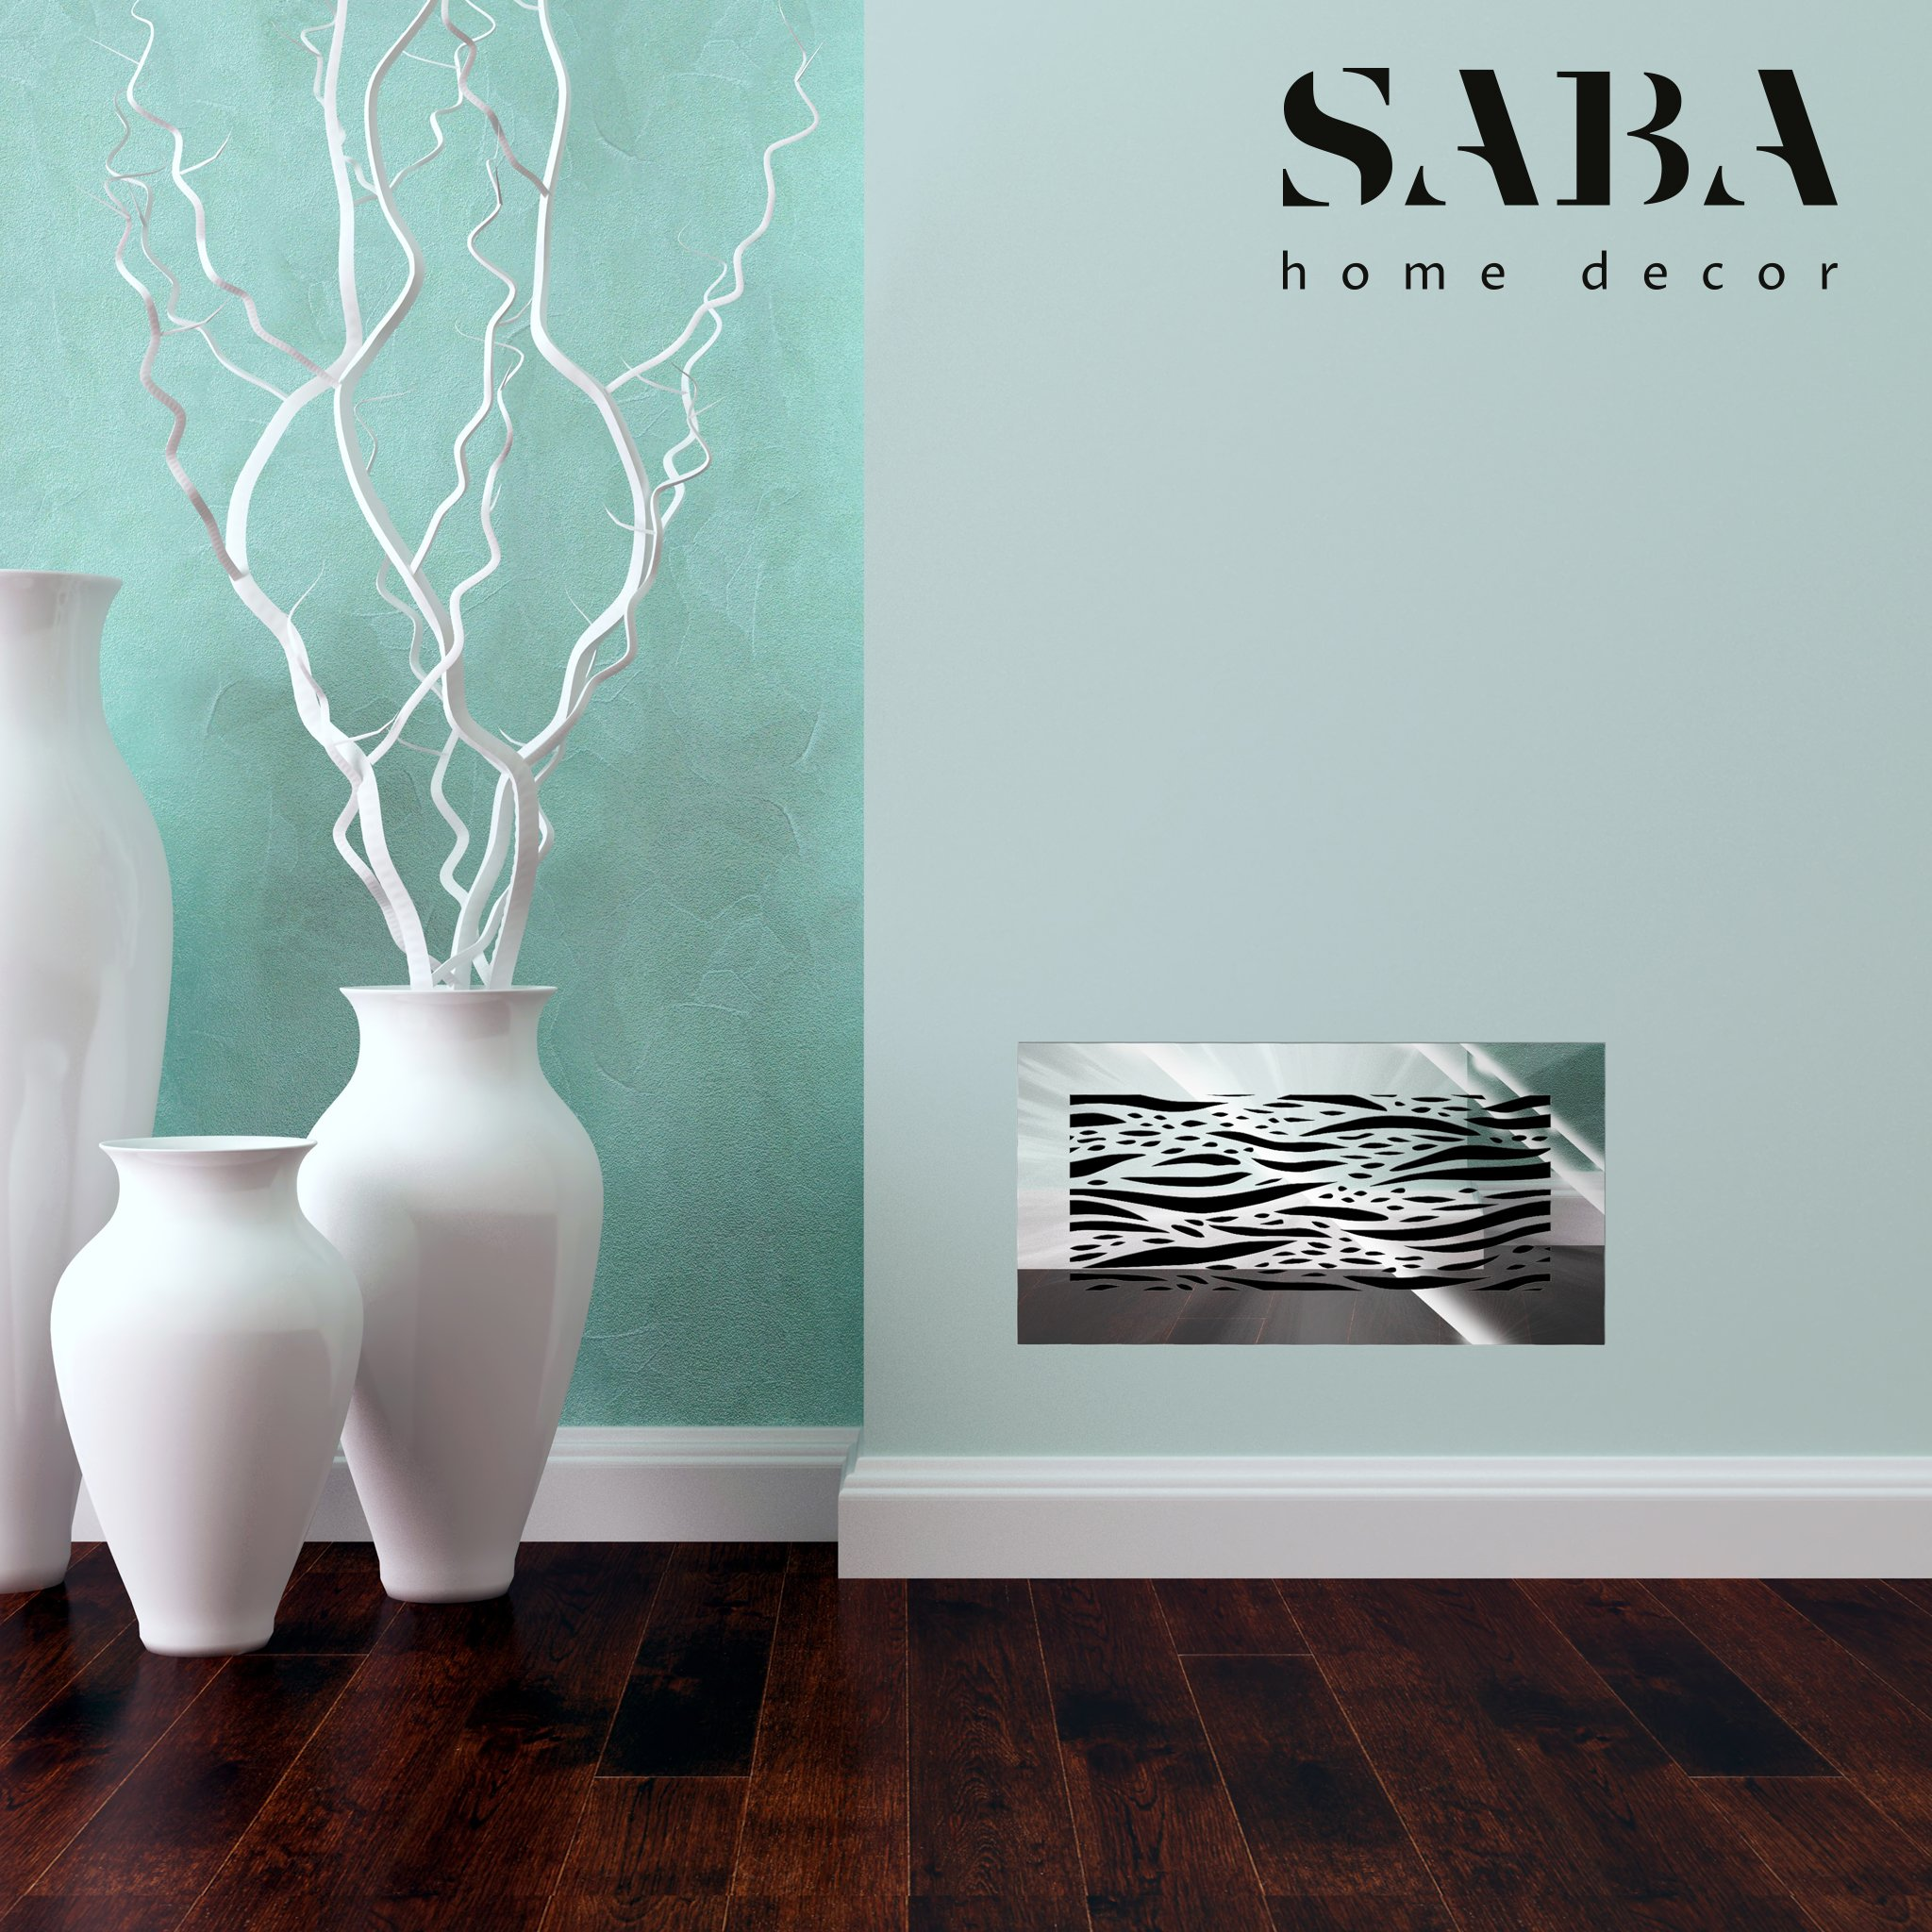 Saba Air Vent Covers Register - Acrylic Fiberglass Grille 10'' x 6'' Duct Opening (12'' x 8'' Overall) Mirror Finish Decorative Cover for Walls and Ceilings (not for Floor use), Waves by SABA Home Decor (Image #5)